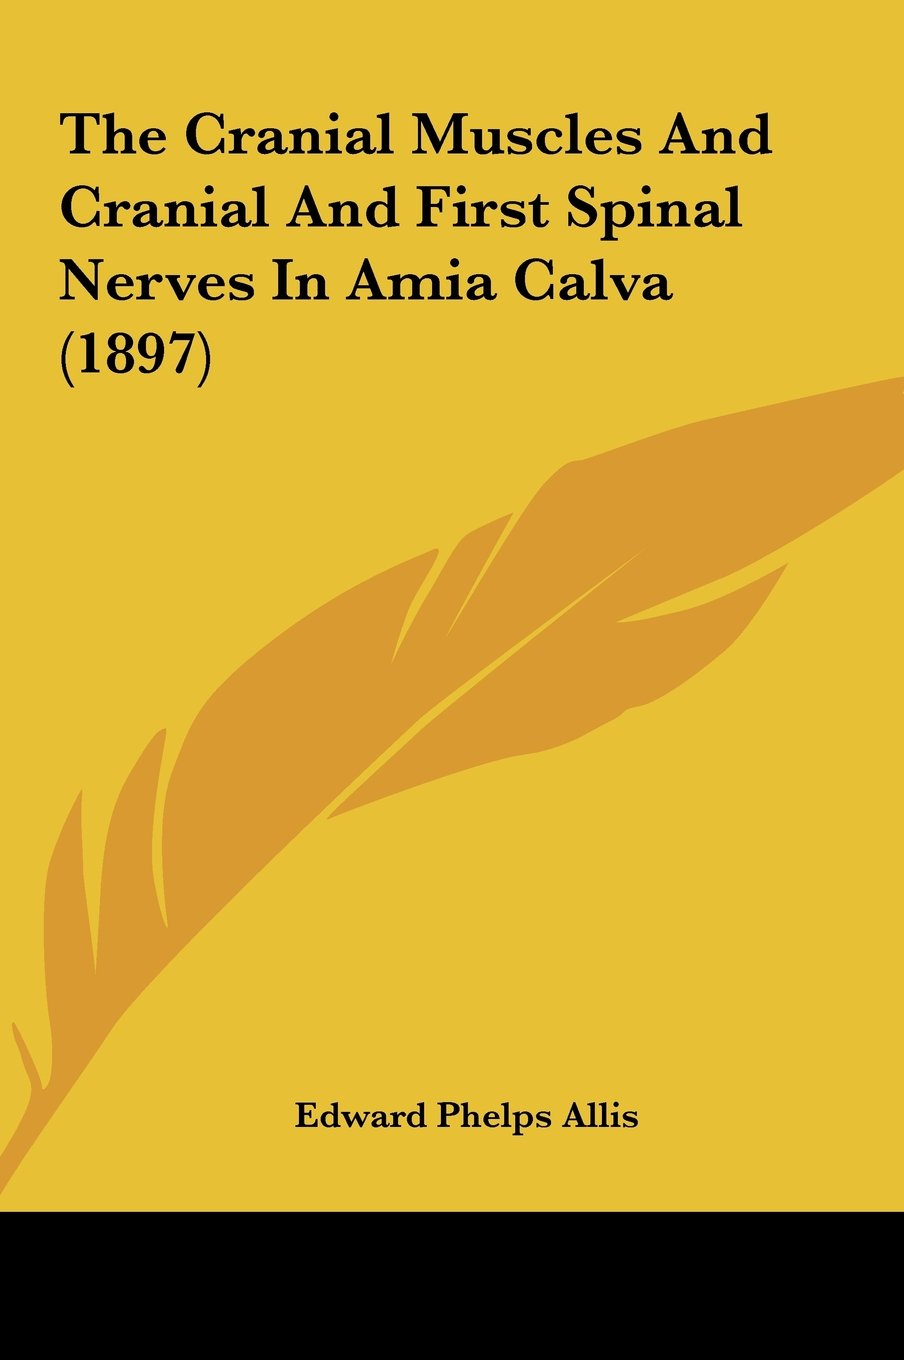 The Cranial Muscles And Cranial And First Spinal Nerves In Amia